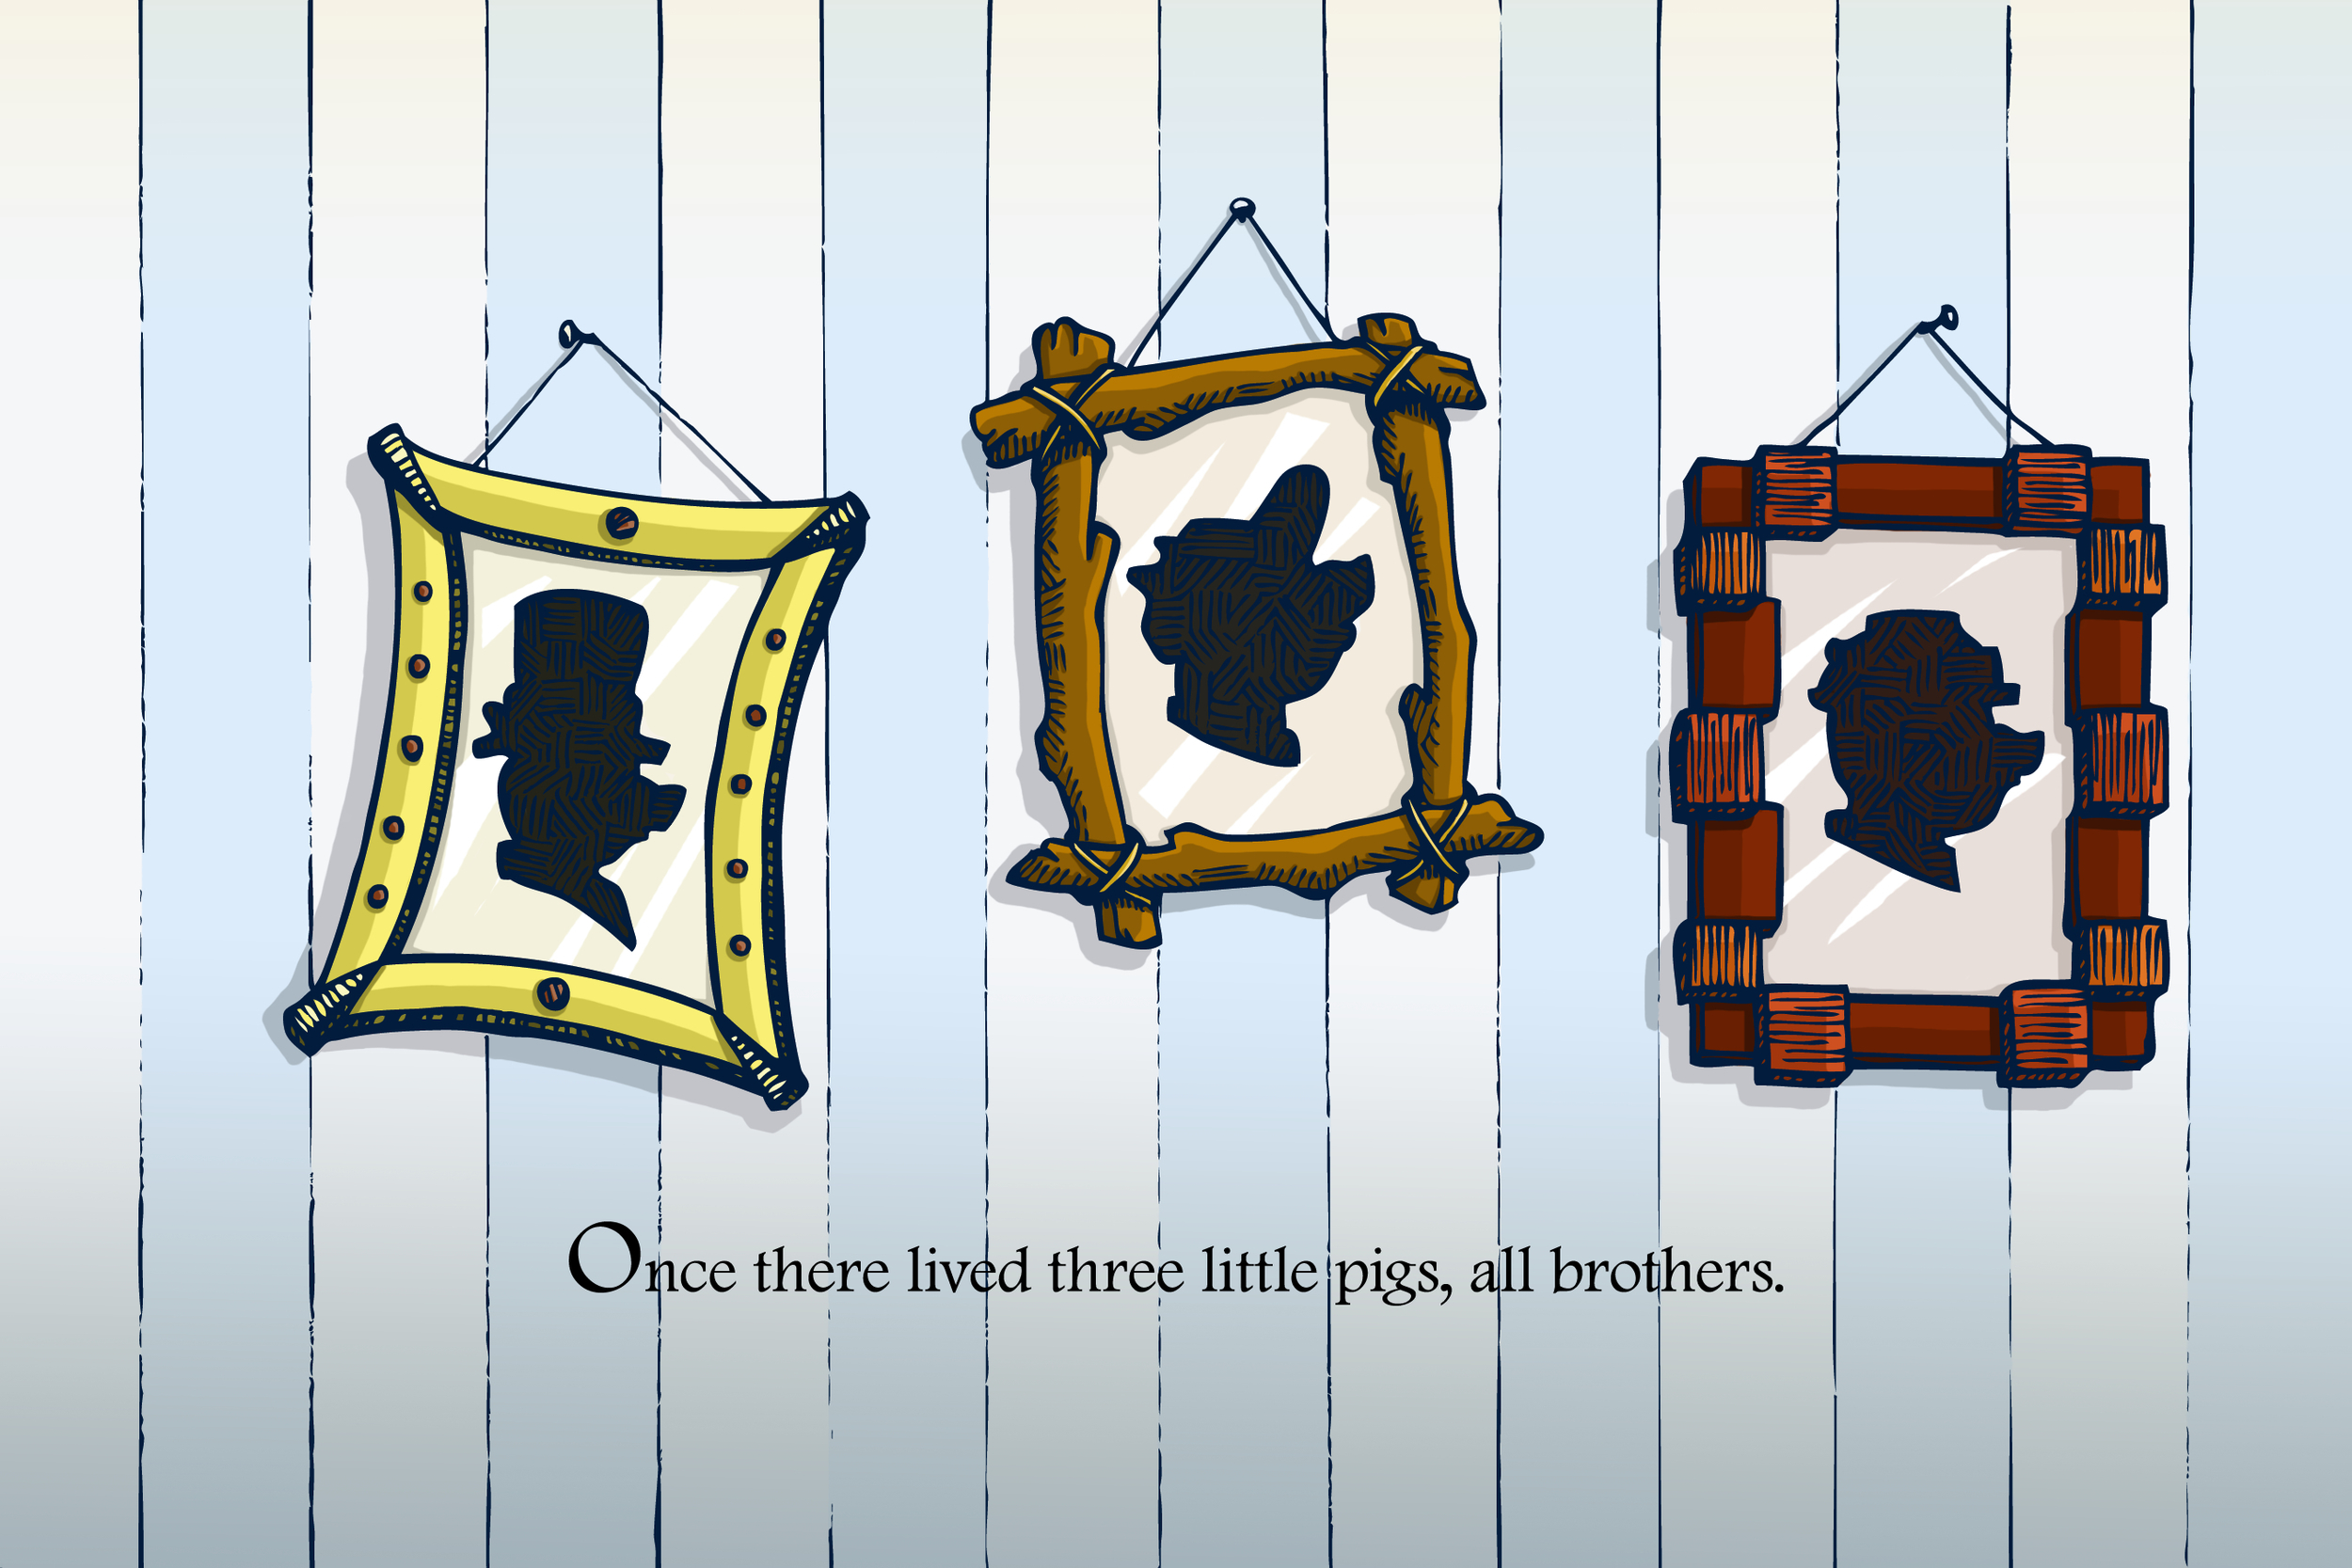 3 Pigs first page